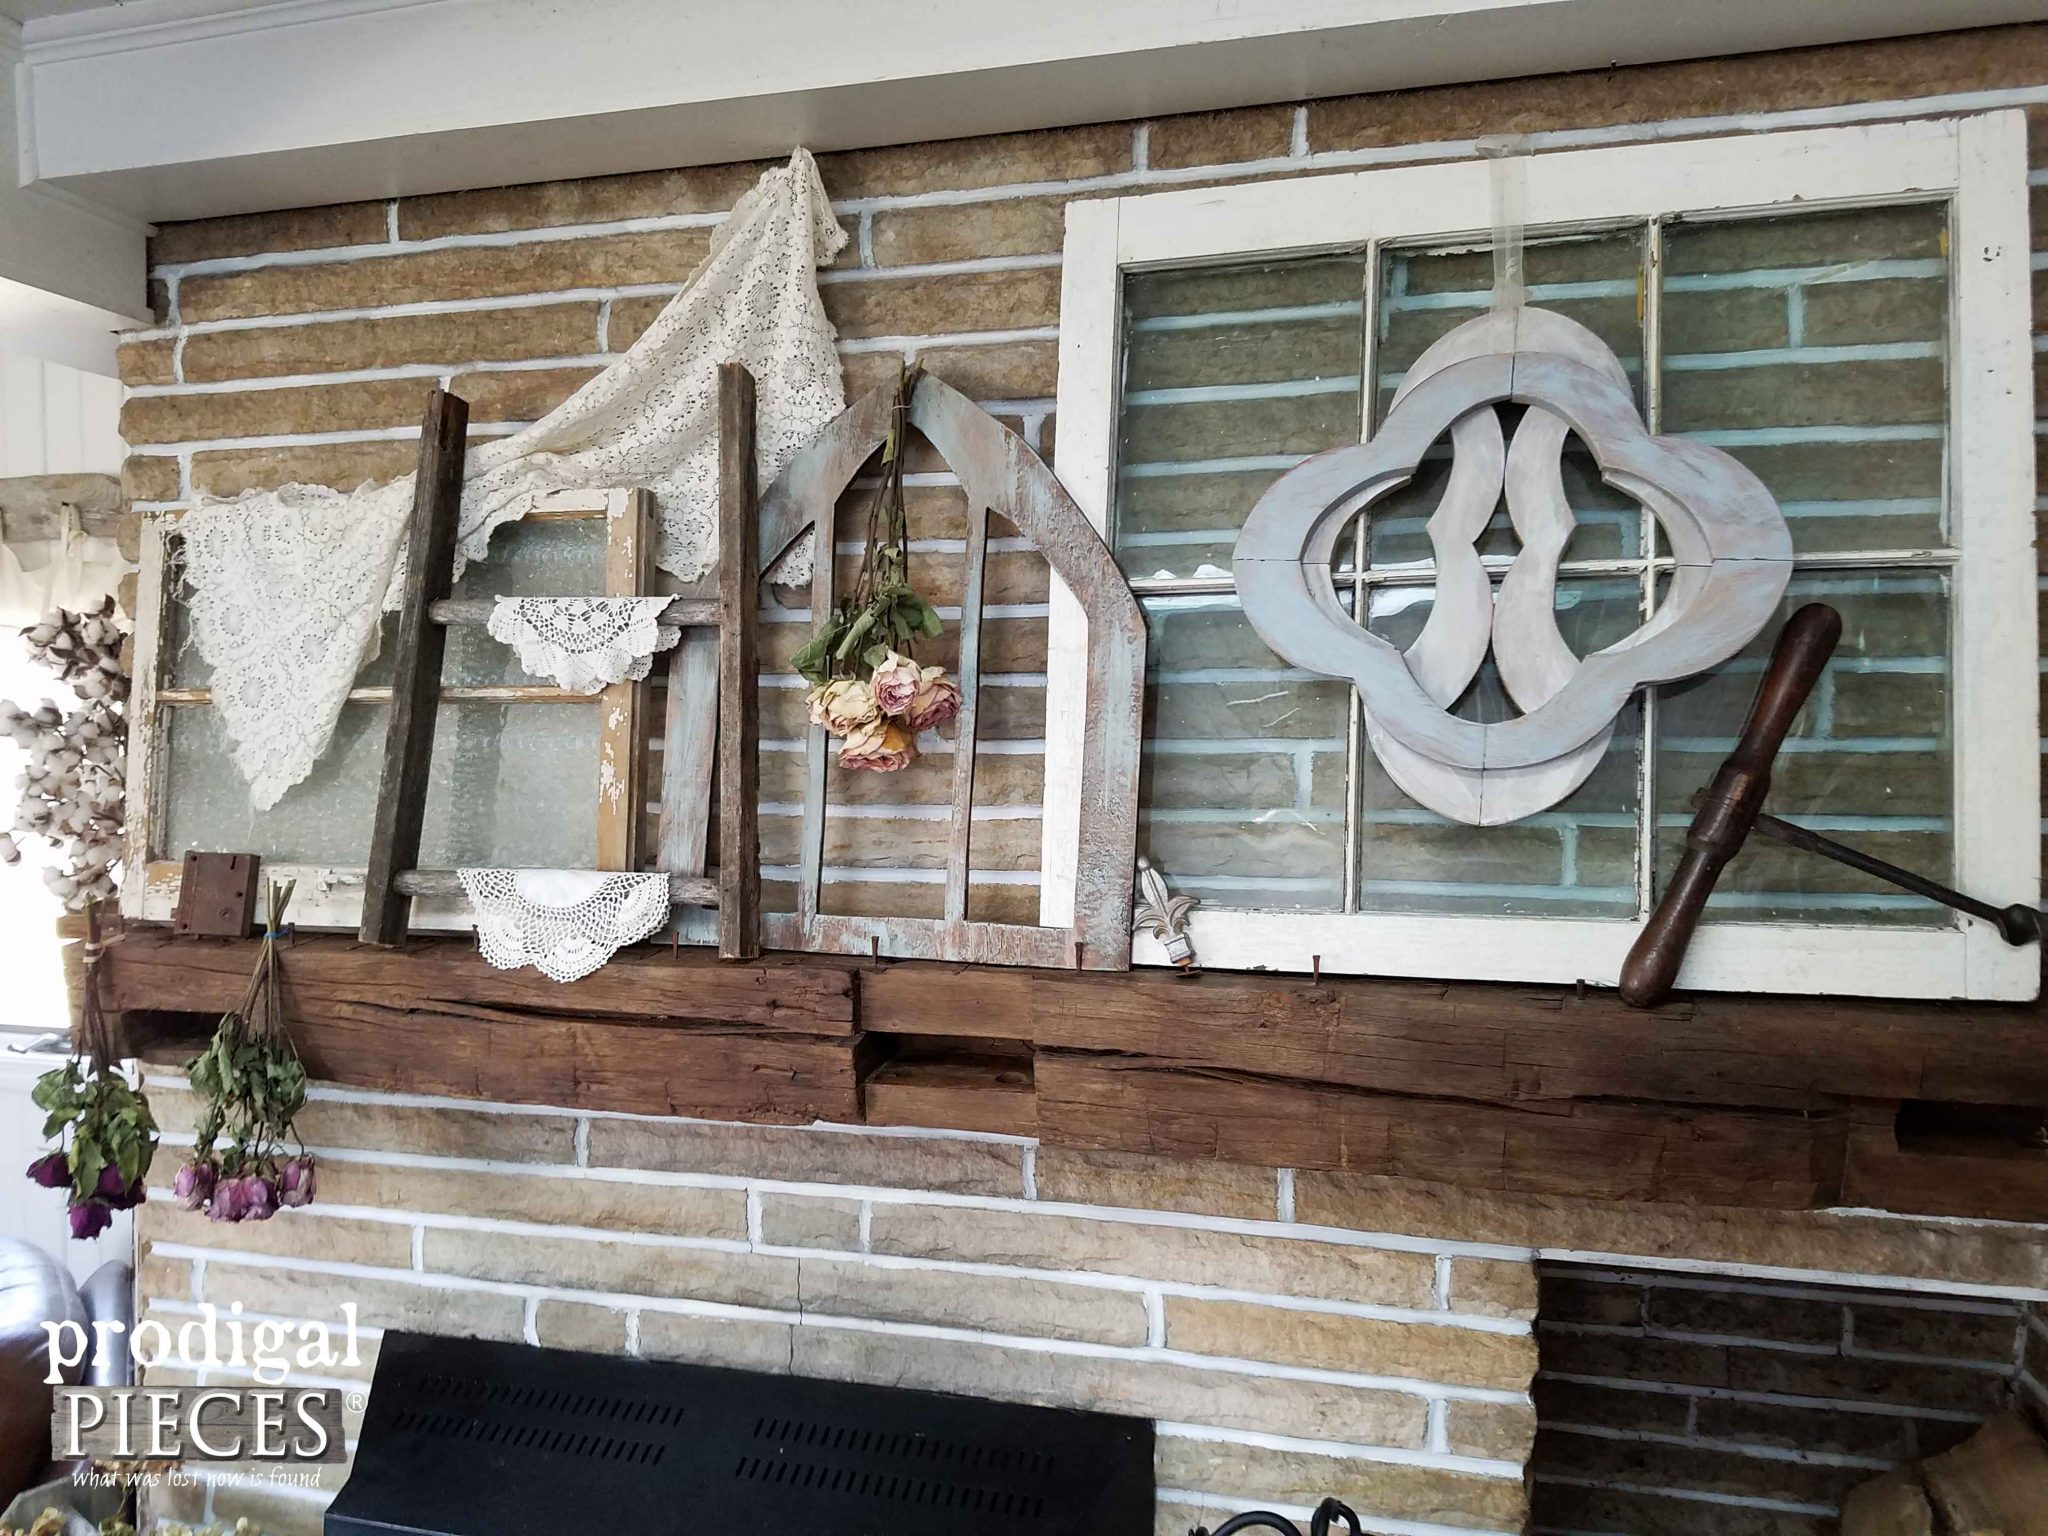 Rustic Chic Fireplace Mantel by Prodigal Pieces | prodigalpieces.com